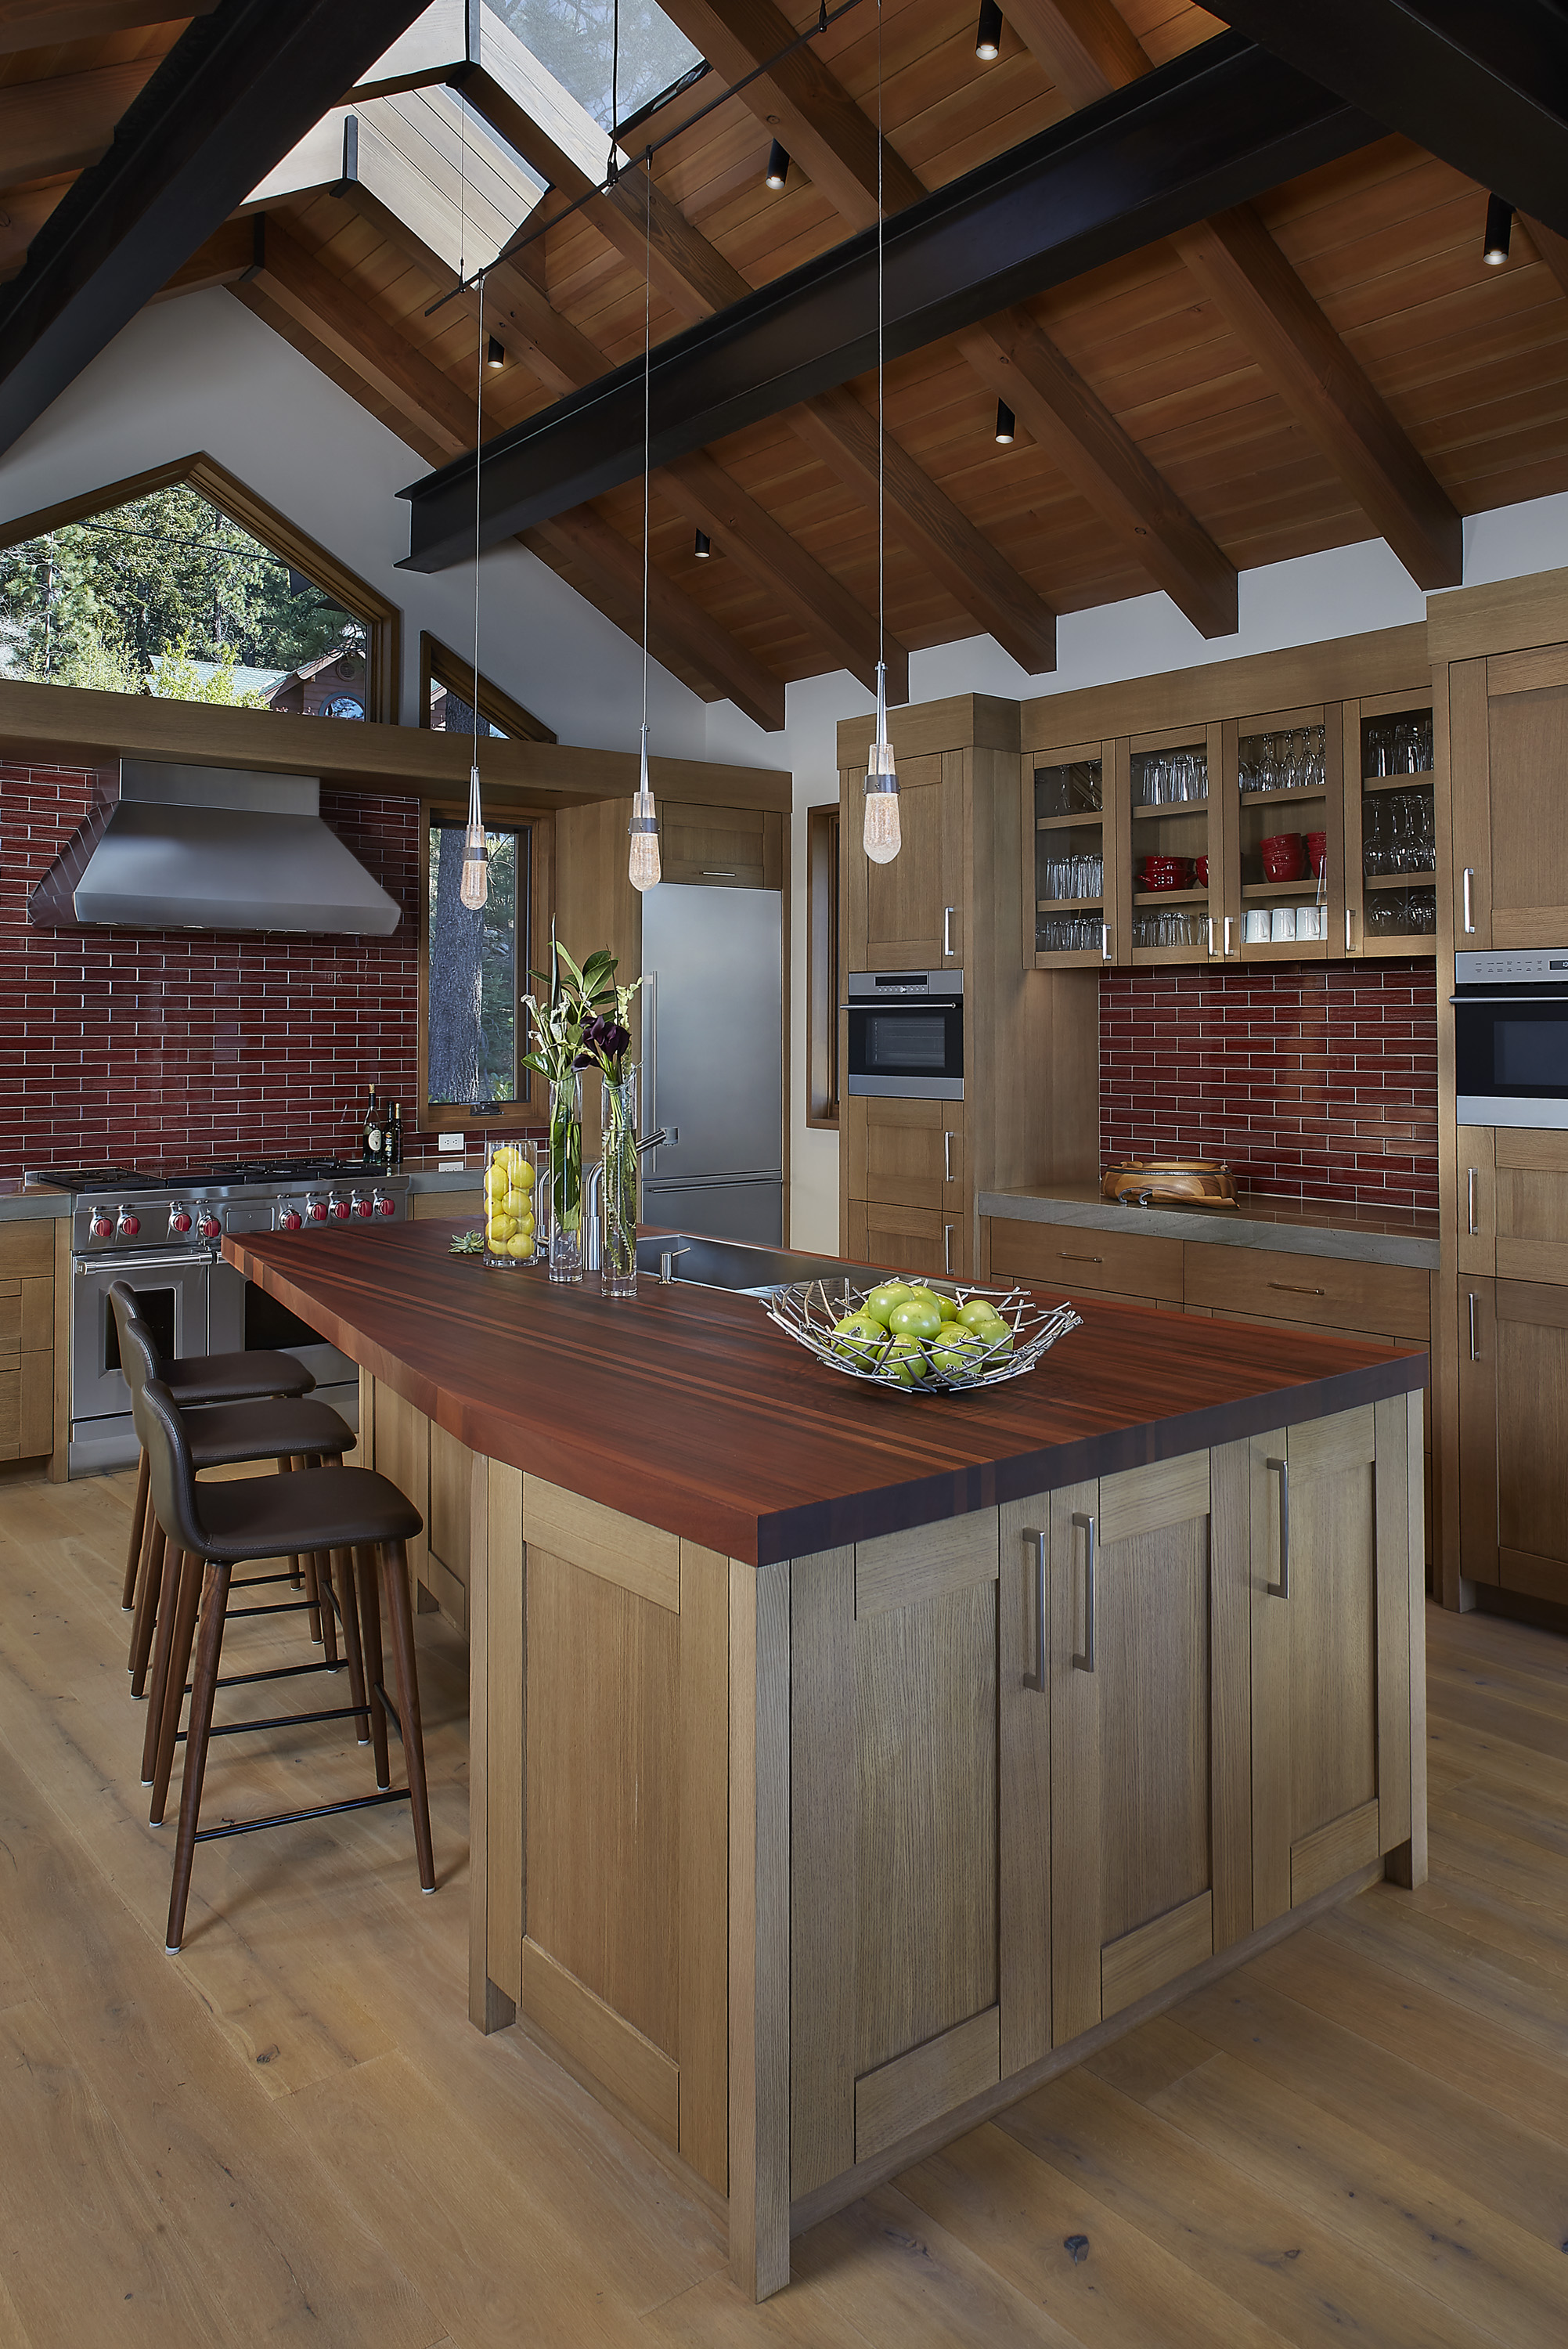 Kitchen Interior Design Ranchi: Kitchen Designs Los Gatos, Bay Area